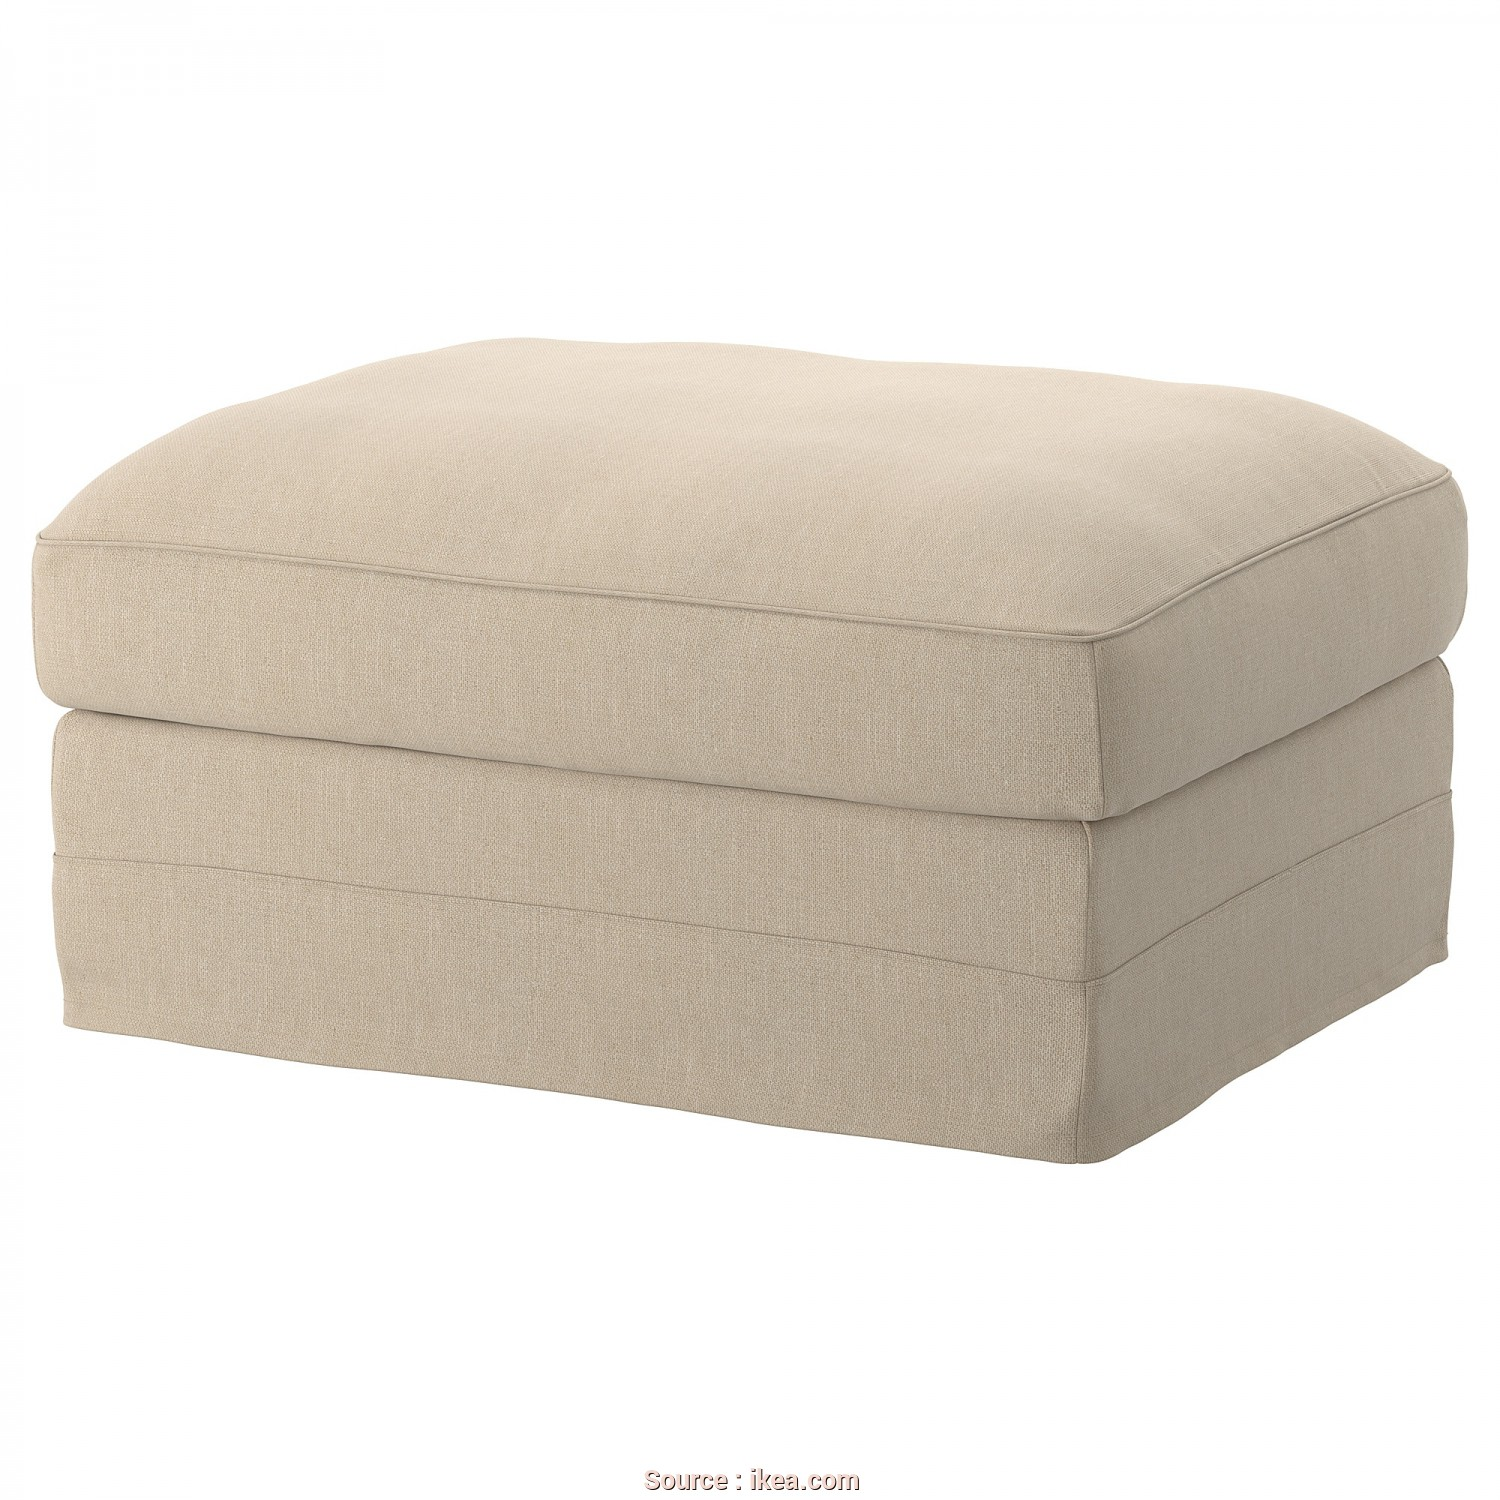 Ikea Klippan Footstool Cover, Superiore IKEA GRÖNLID Cover, Footstool With Storage